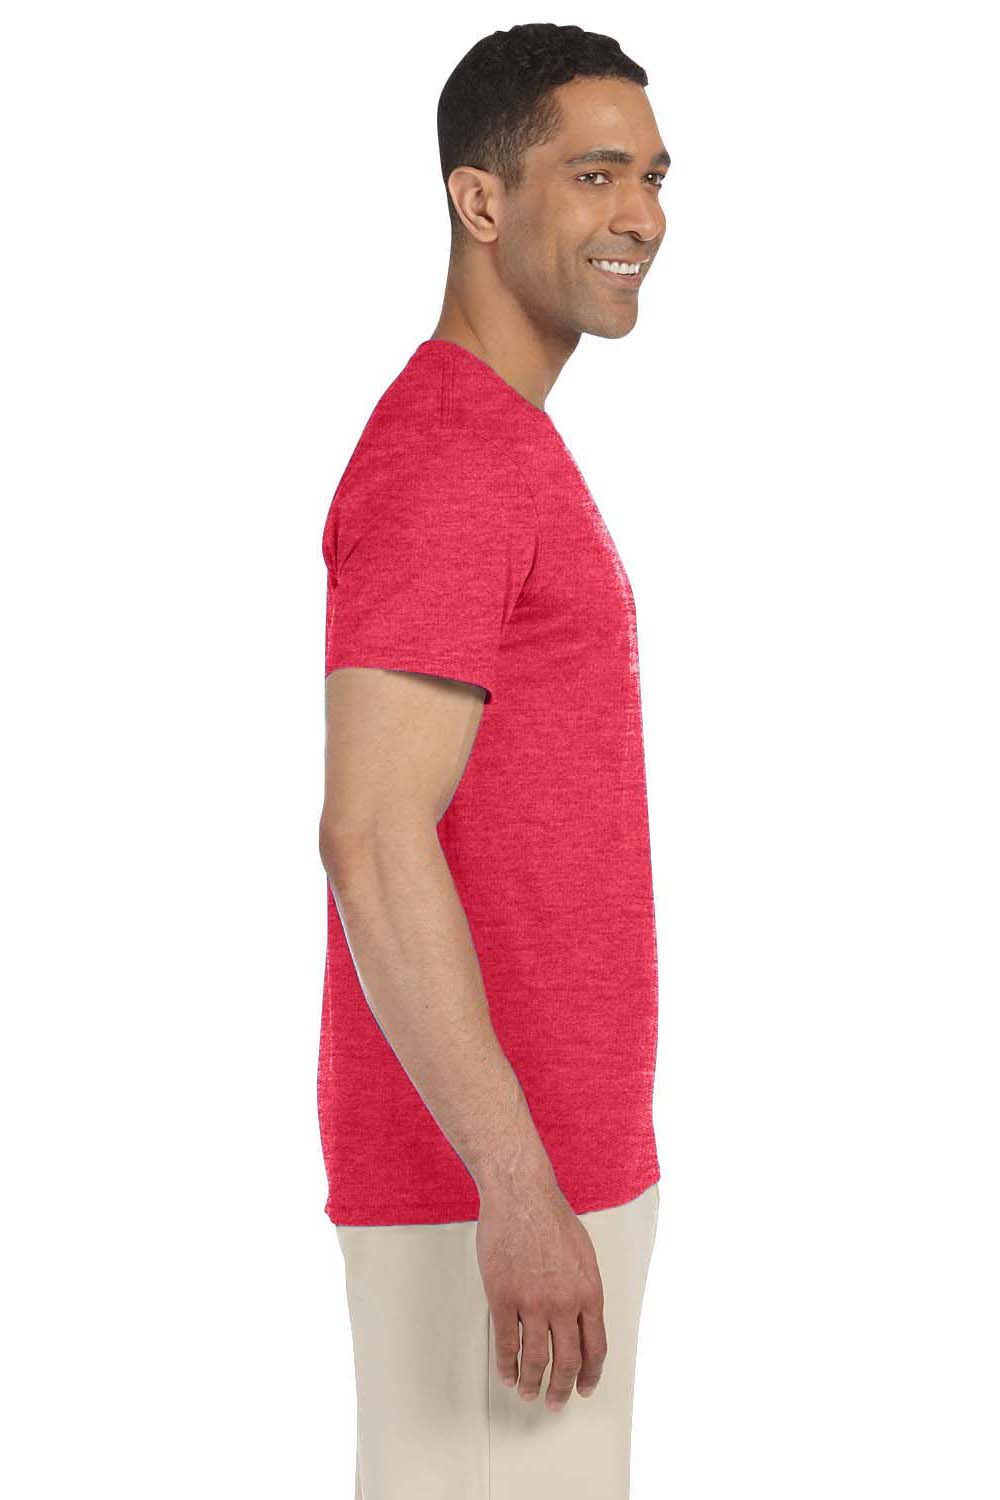 Gildan G640 Mens Softstyle Short Sleeve Crewneck T-Shirt Heather Red Side